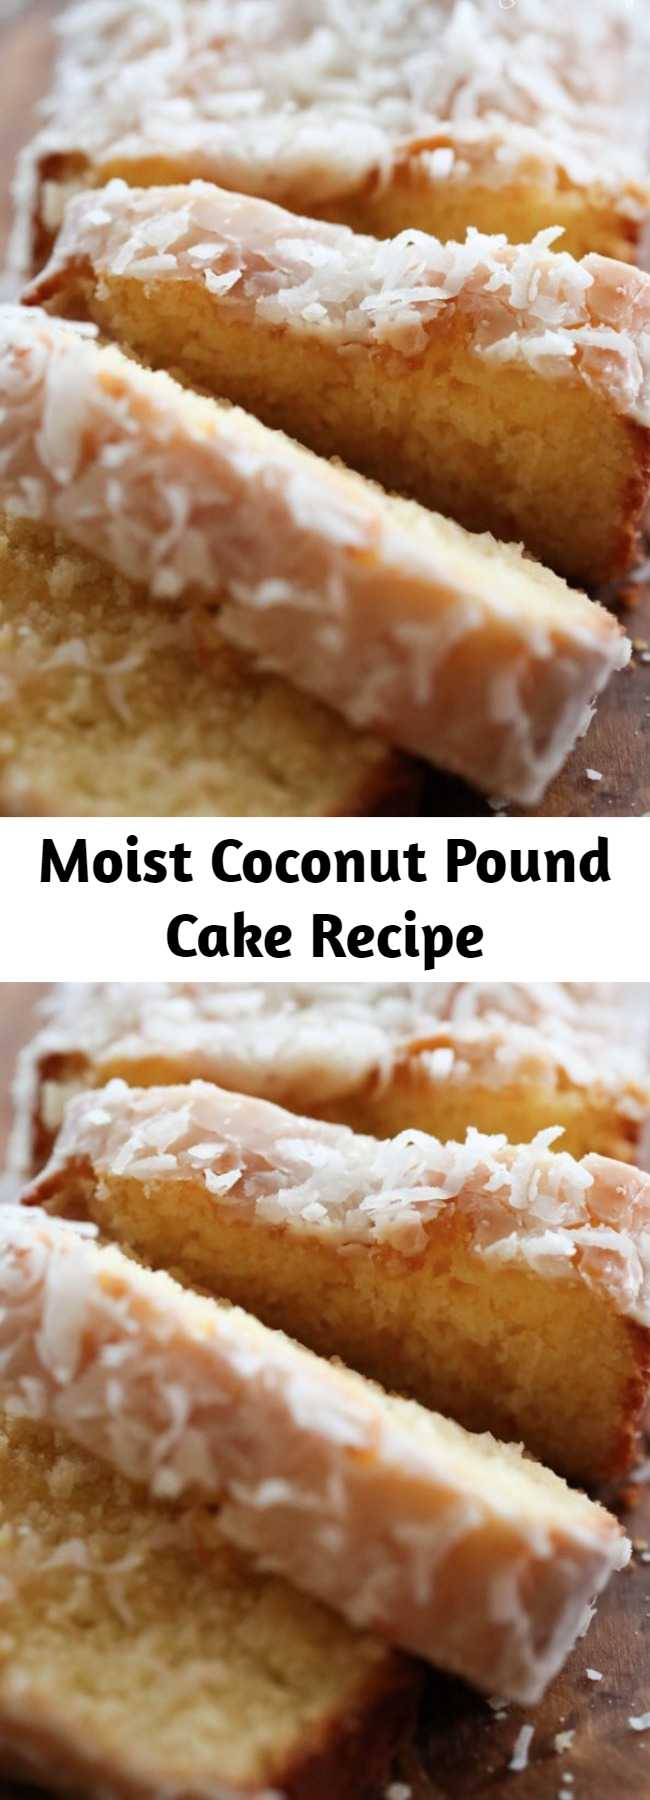 Moist Coconut Pound Cake Recipe - This pound cake is SO moist and so delicious! It will quickly become a new favorite!